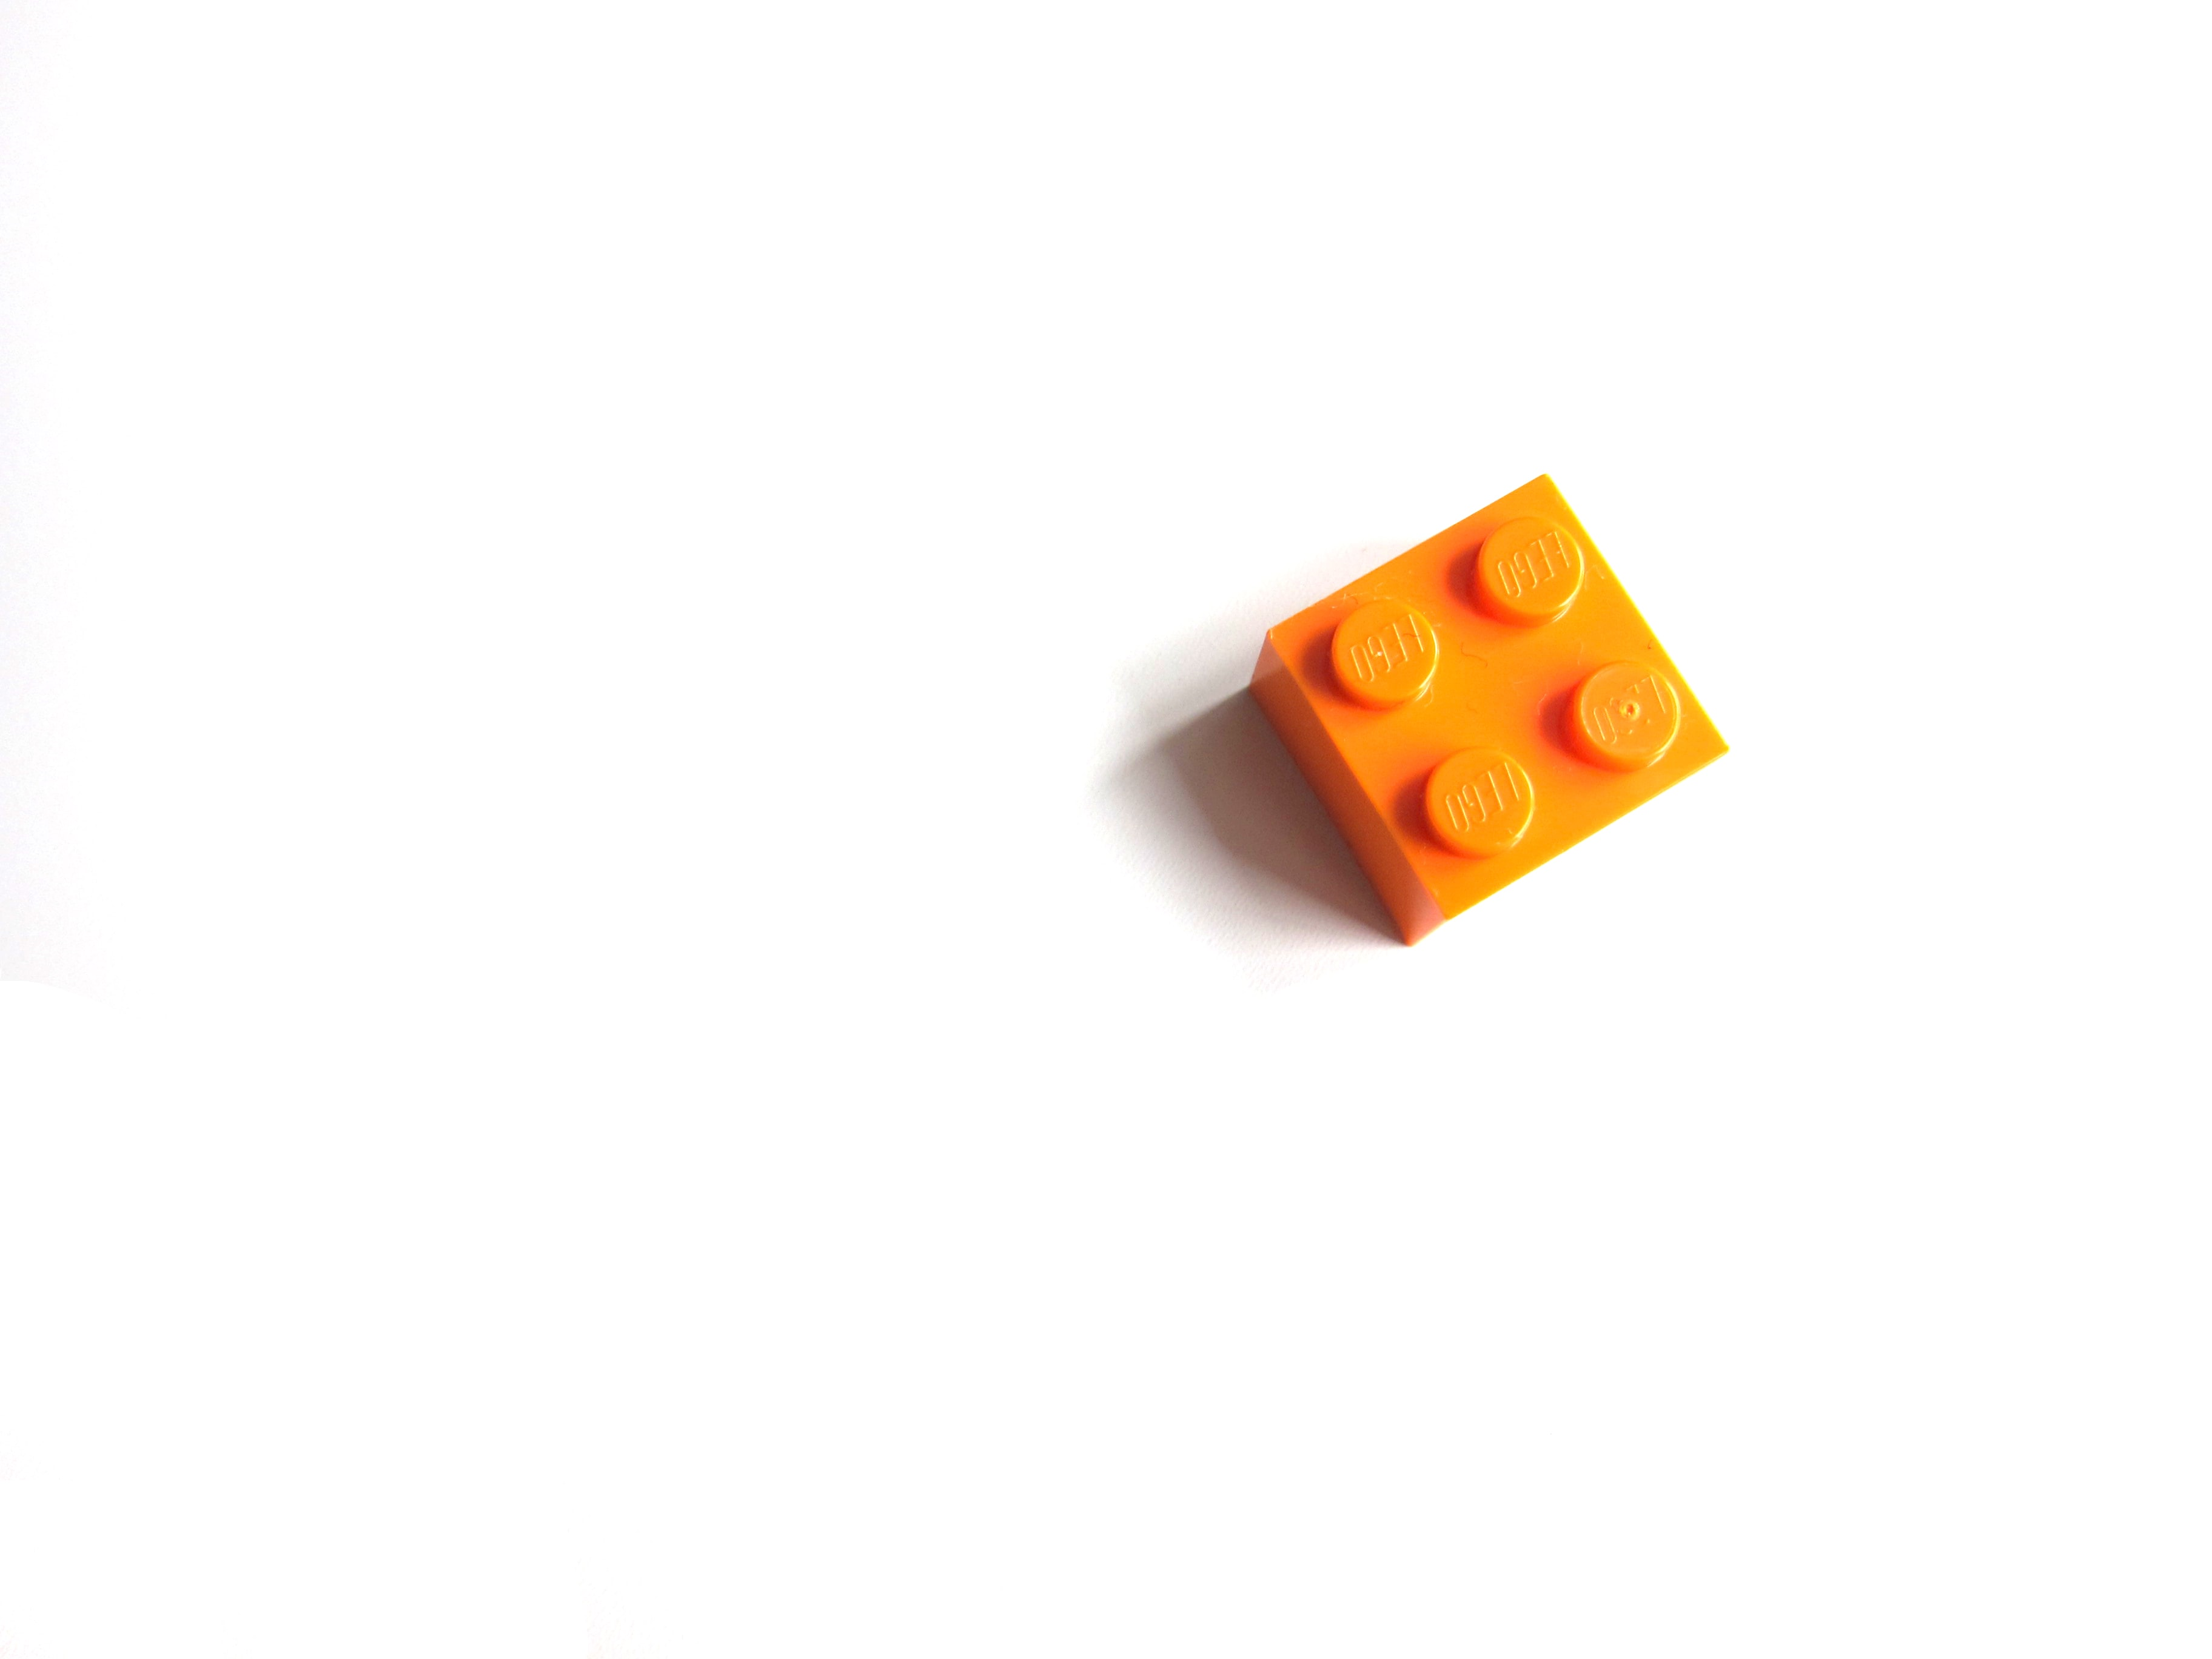 A single orange lego sits, face up, on a white background.